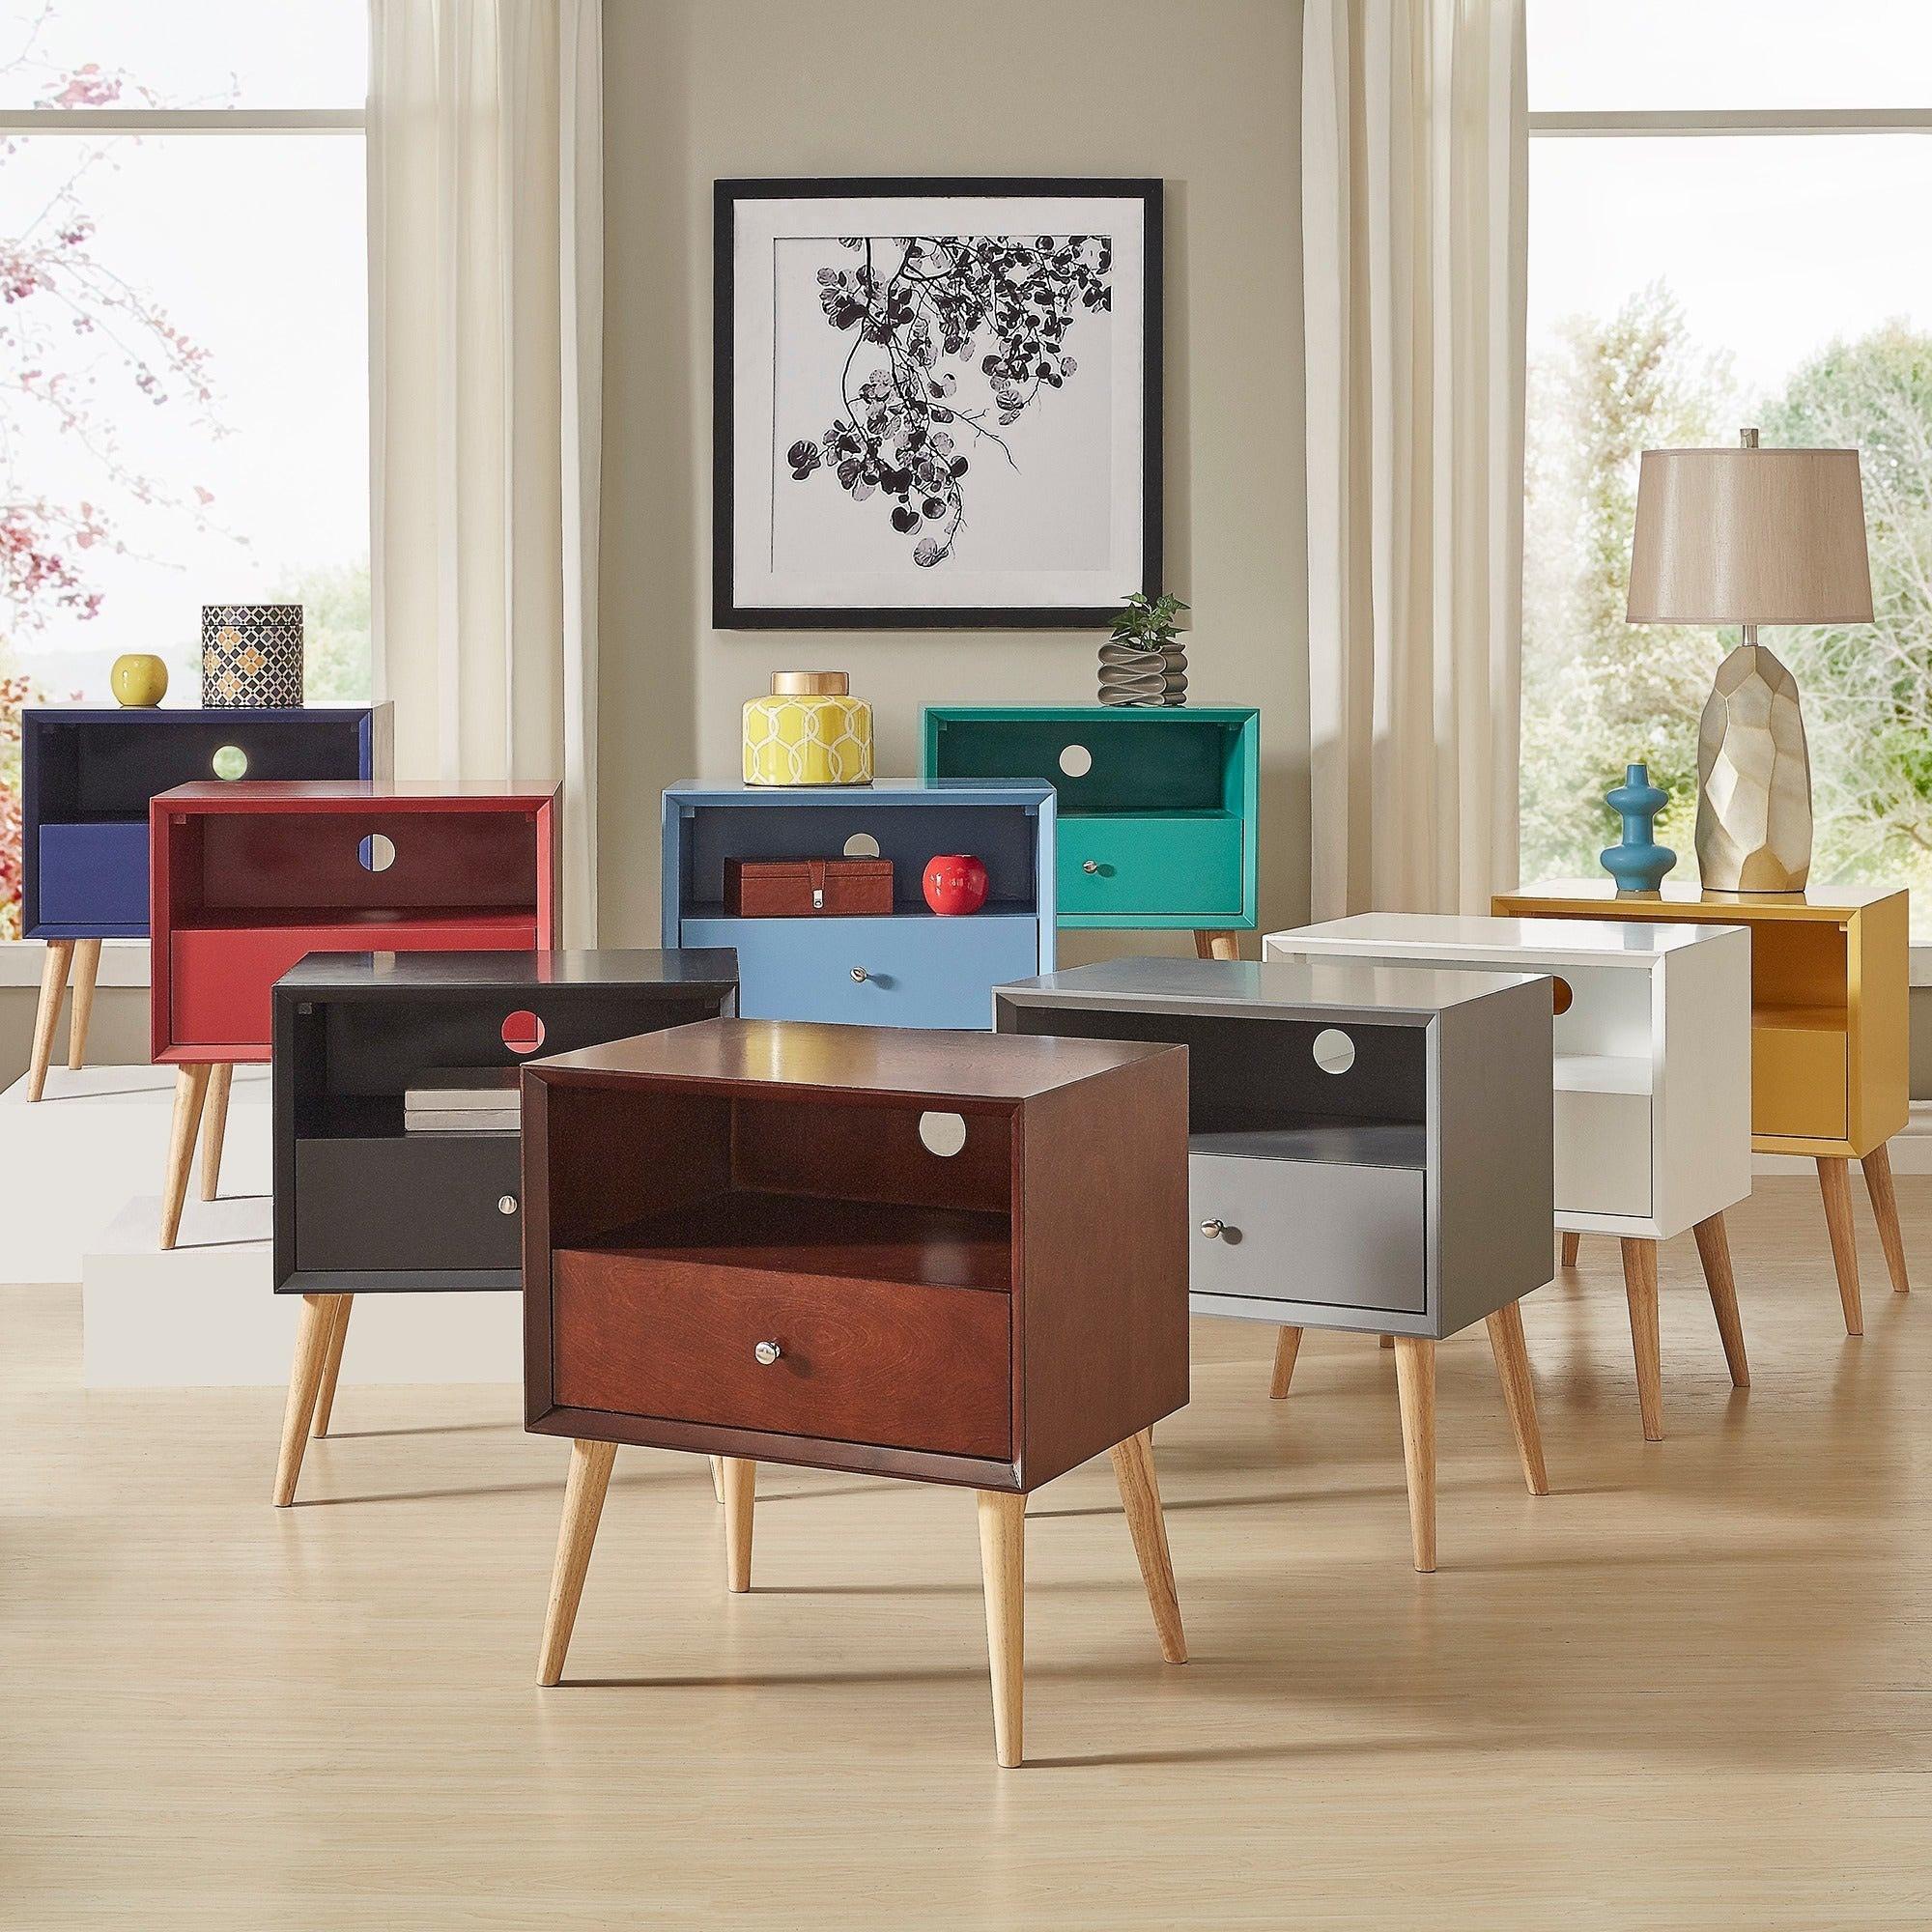 Marin Danish Modern 1-drawer Storage Accent Side Table iNSPIRE Q Modern -  Free Shipping Today - Overstock.com - 19400084